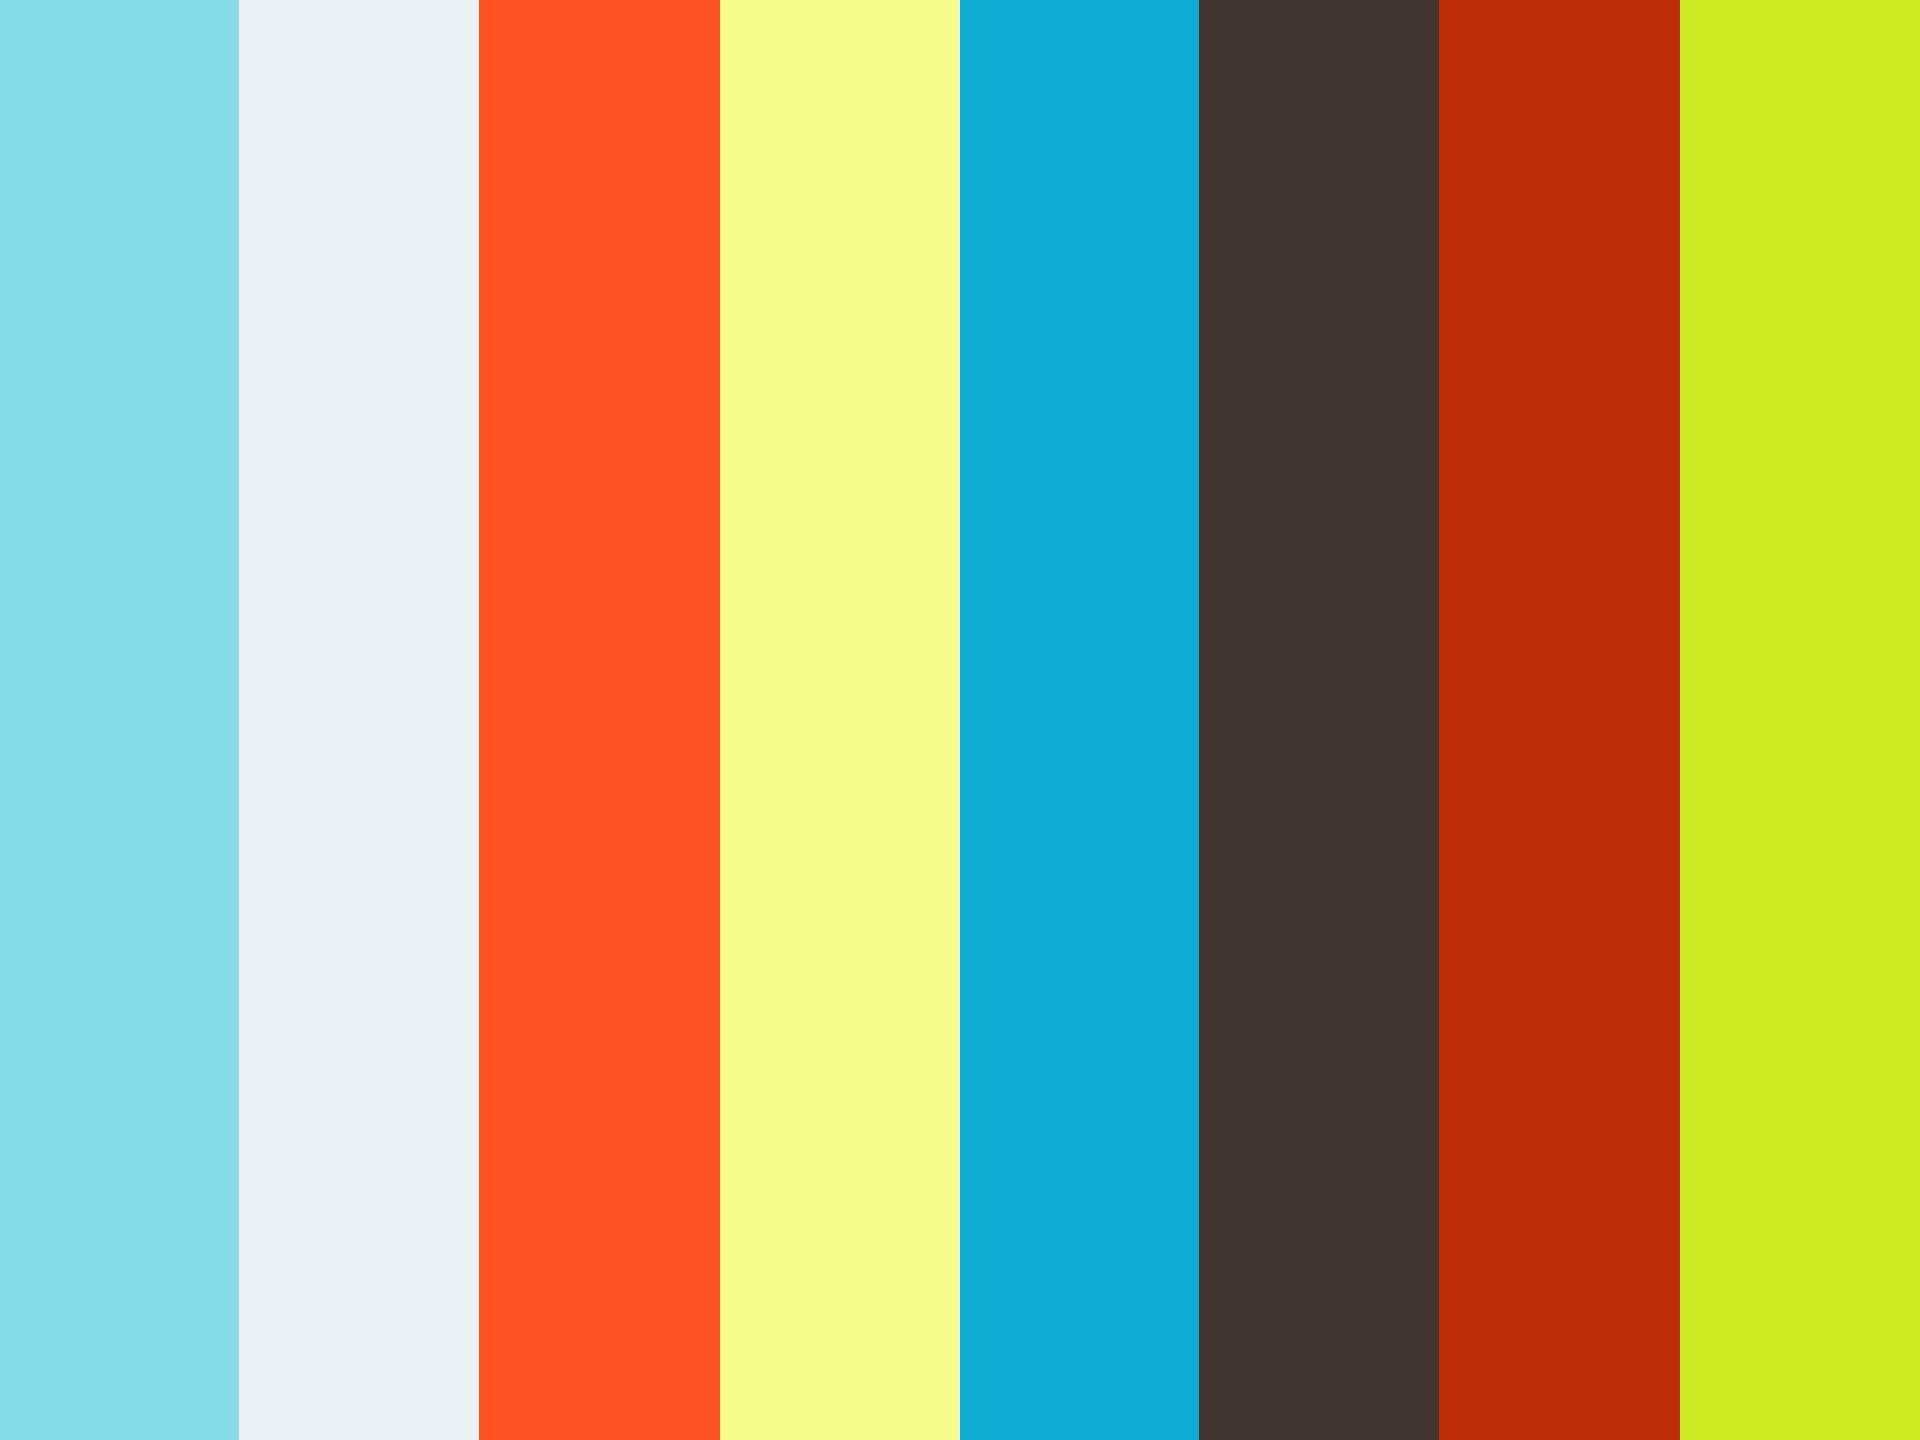 KINETIK'S LOGO IN MOTION